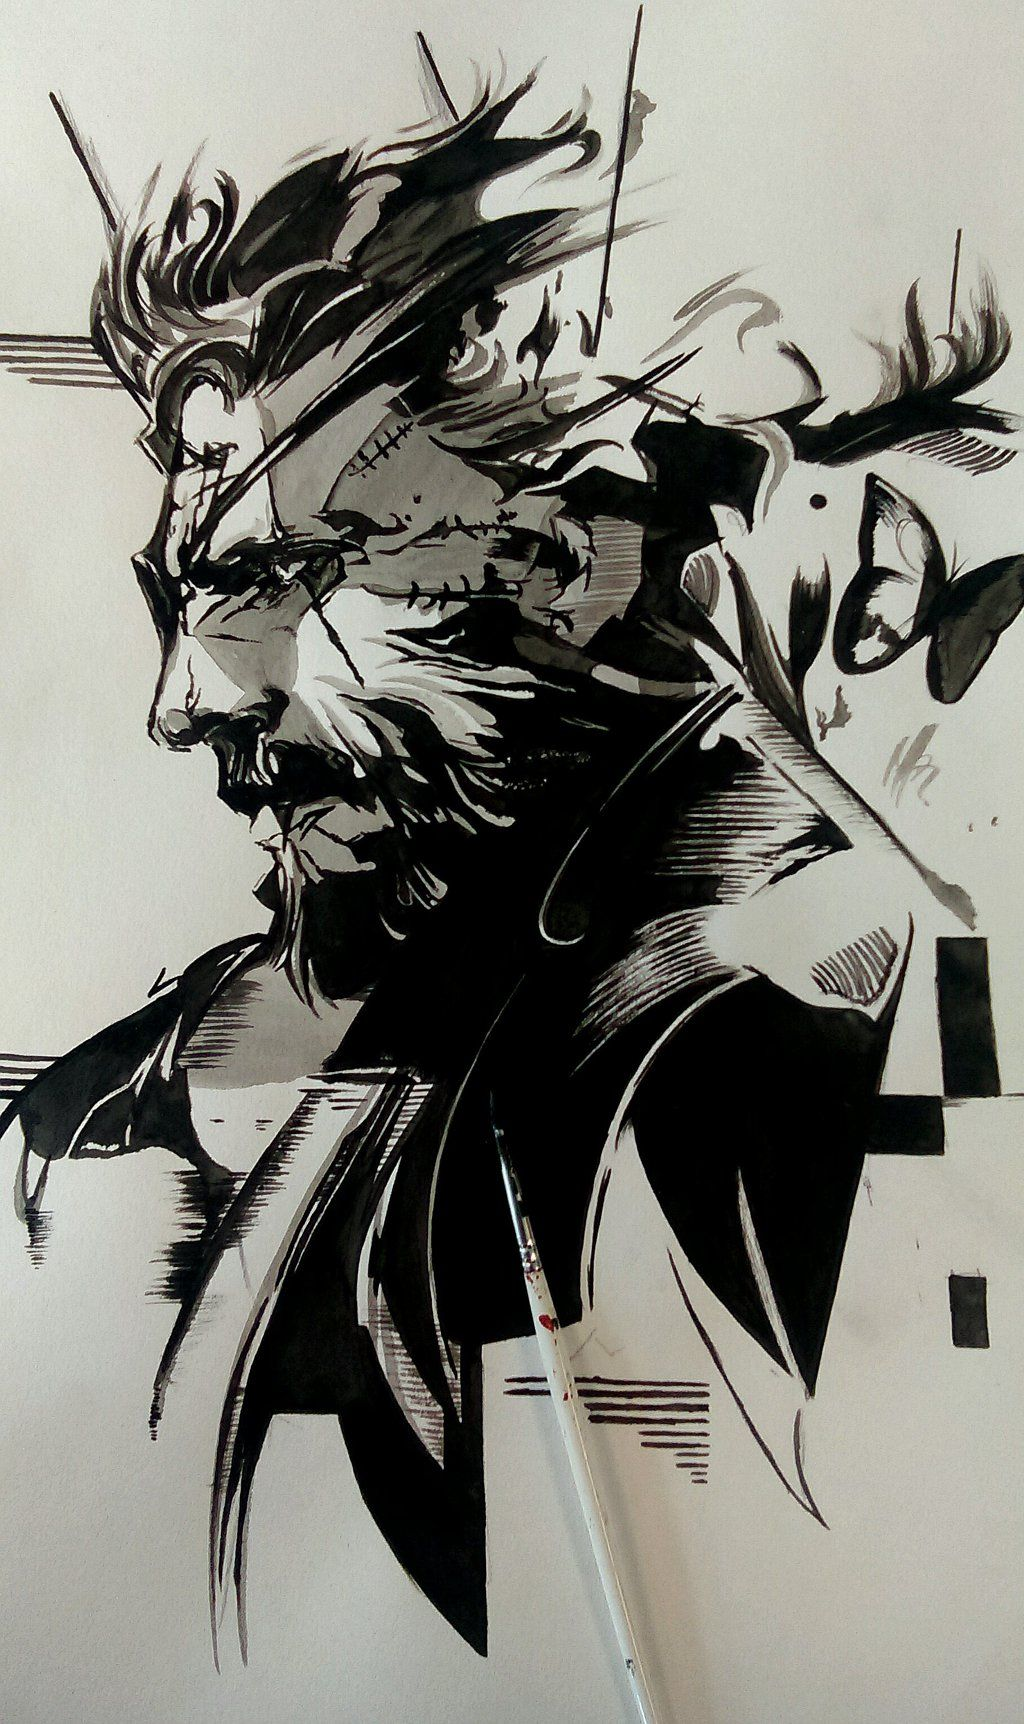 my_a3_ink_poster_of_venom_snake_from_mgs_v_tpp__by_mchorler67-da609zi.jpg (1024×1724)